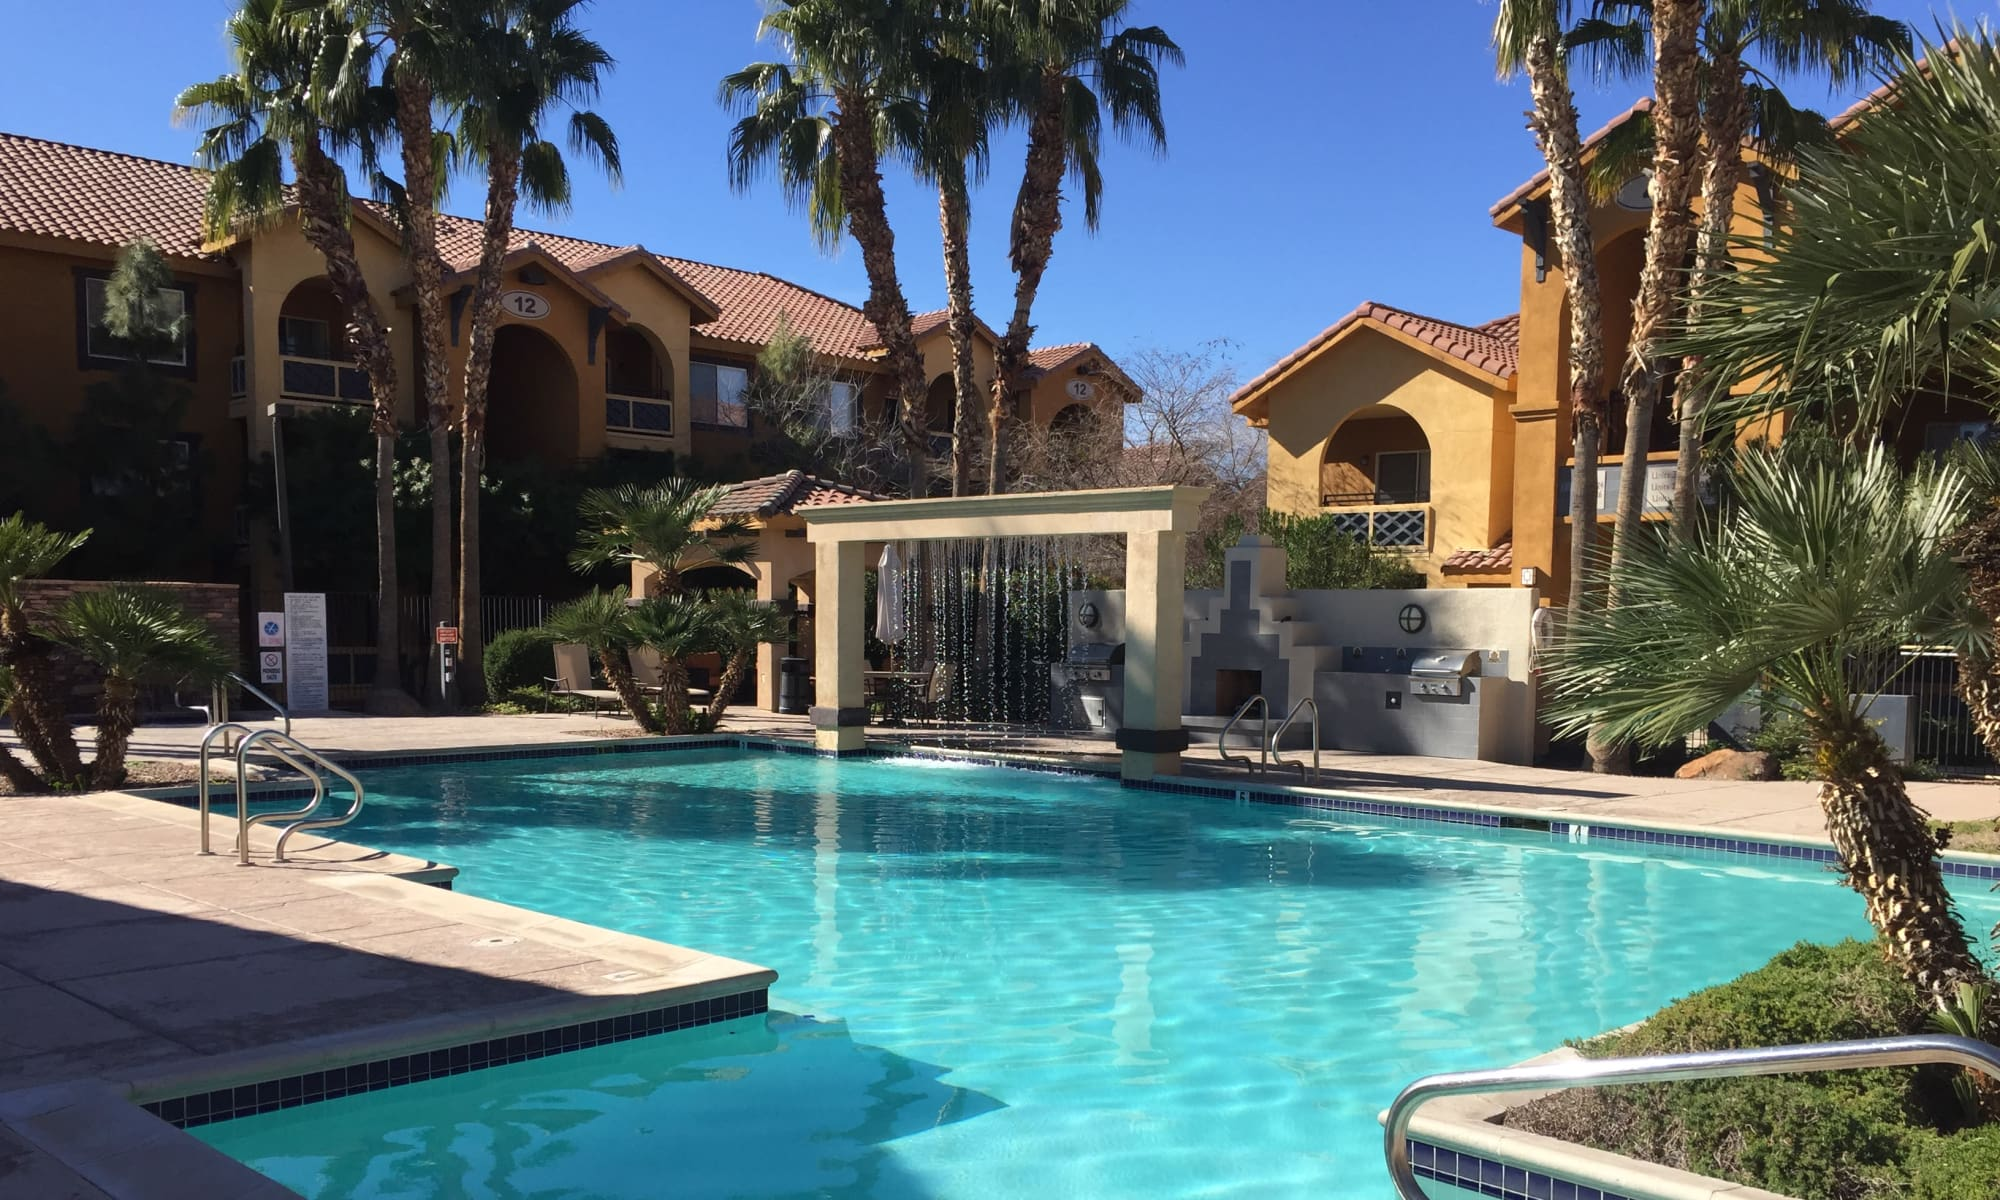 Learn more about our apartment community at The Highlands at Spectrum in Gilbert